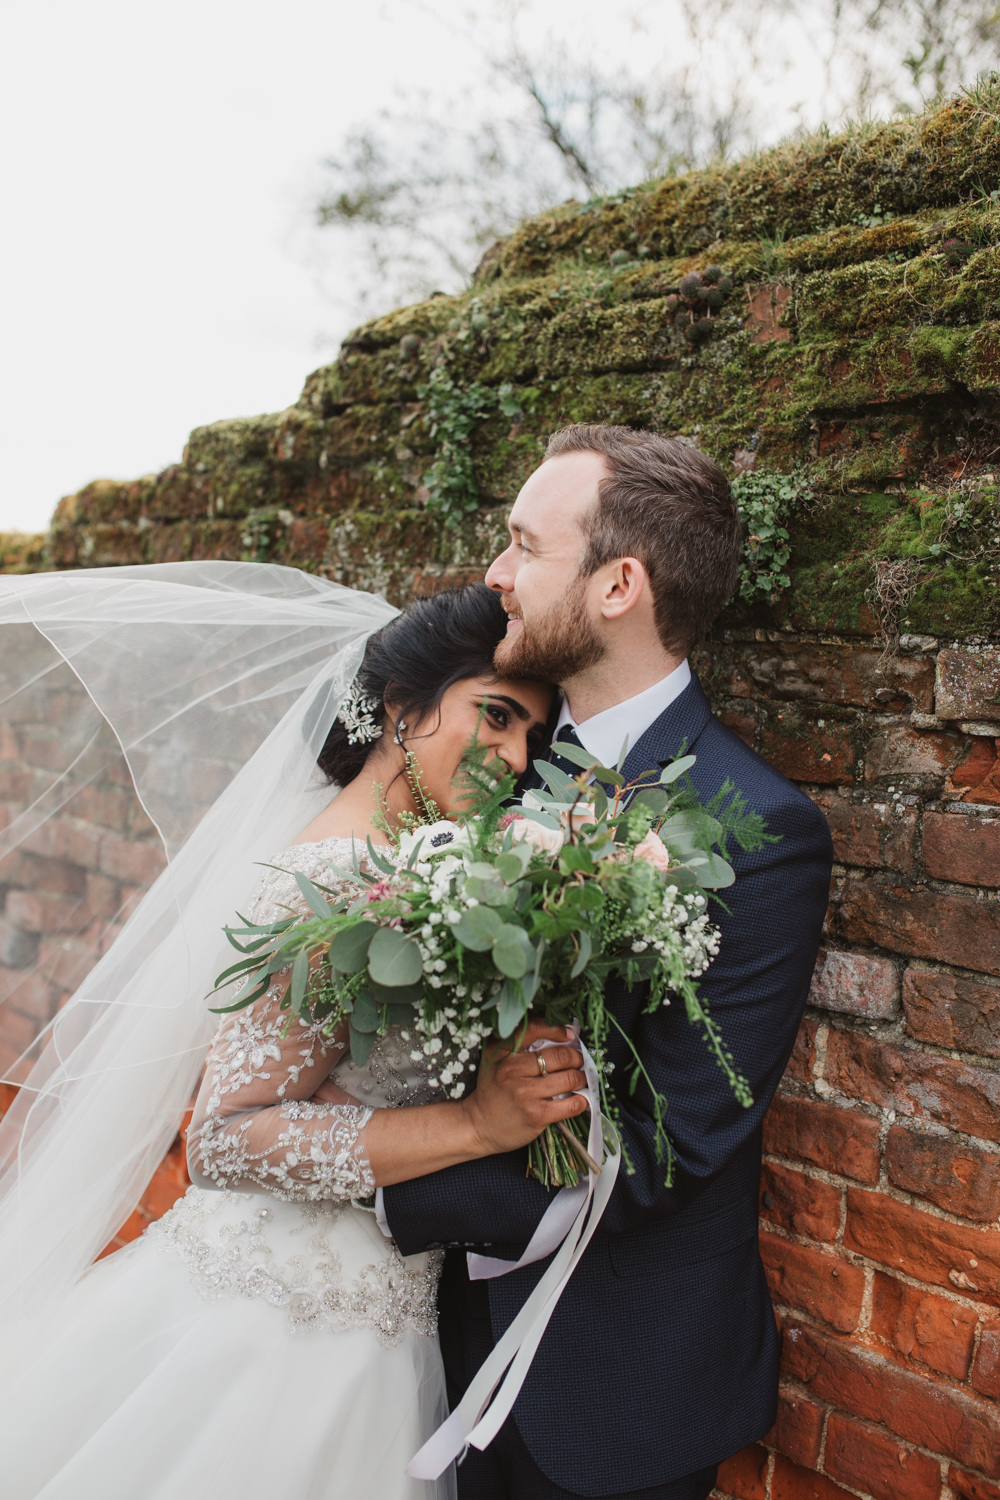 Bride Bridal Lace Long Sleeve Dress Embellished A Line Veil Hair Piece Jewelled Diamante Navy Three Piece Suit Waistcoat Groom Bouquet Eucalyptus Gypsophila Southwood Hall Wedding Emily Tyler Photography